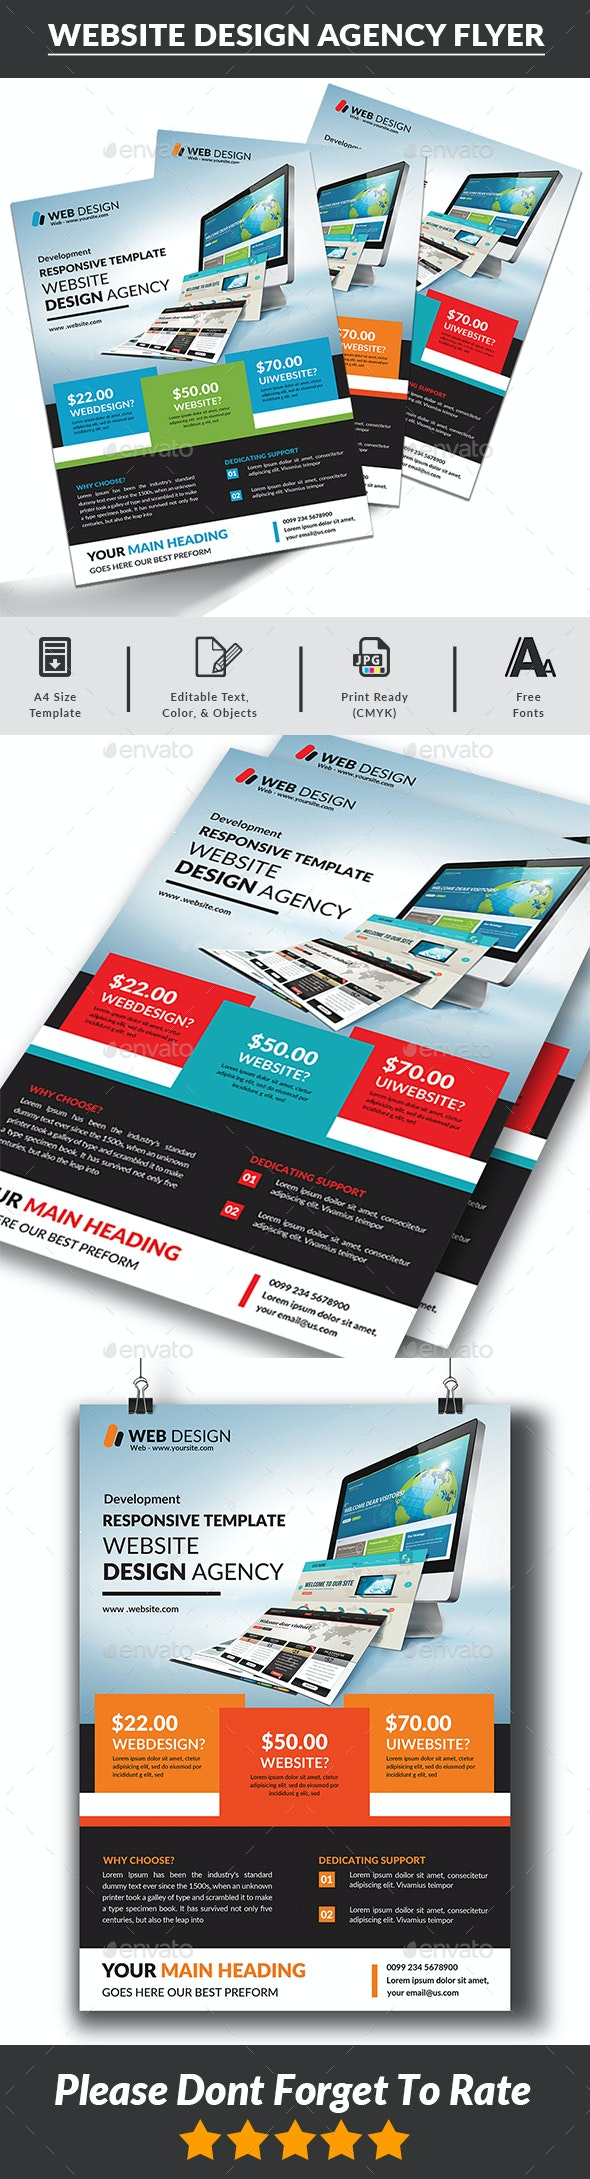 Website Design Agency Flyer Templates - Corporate Flyers